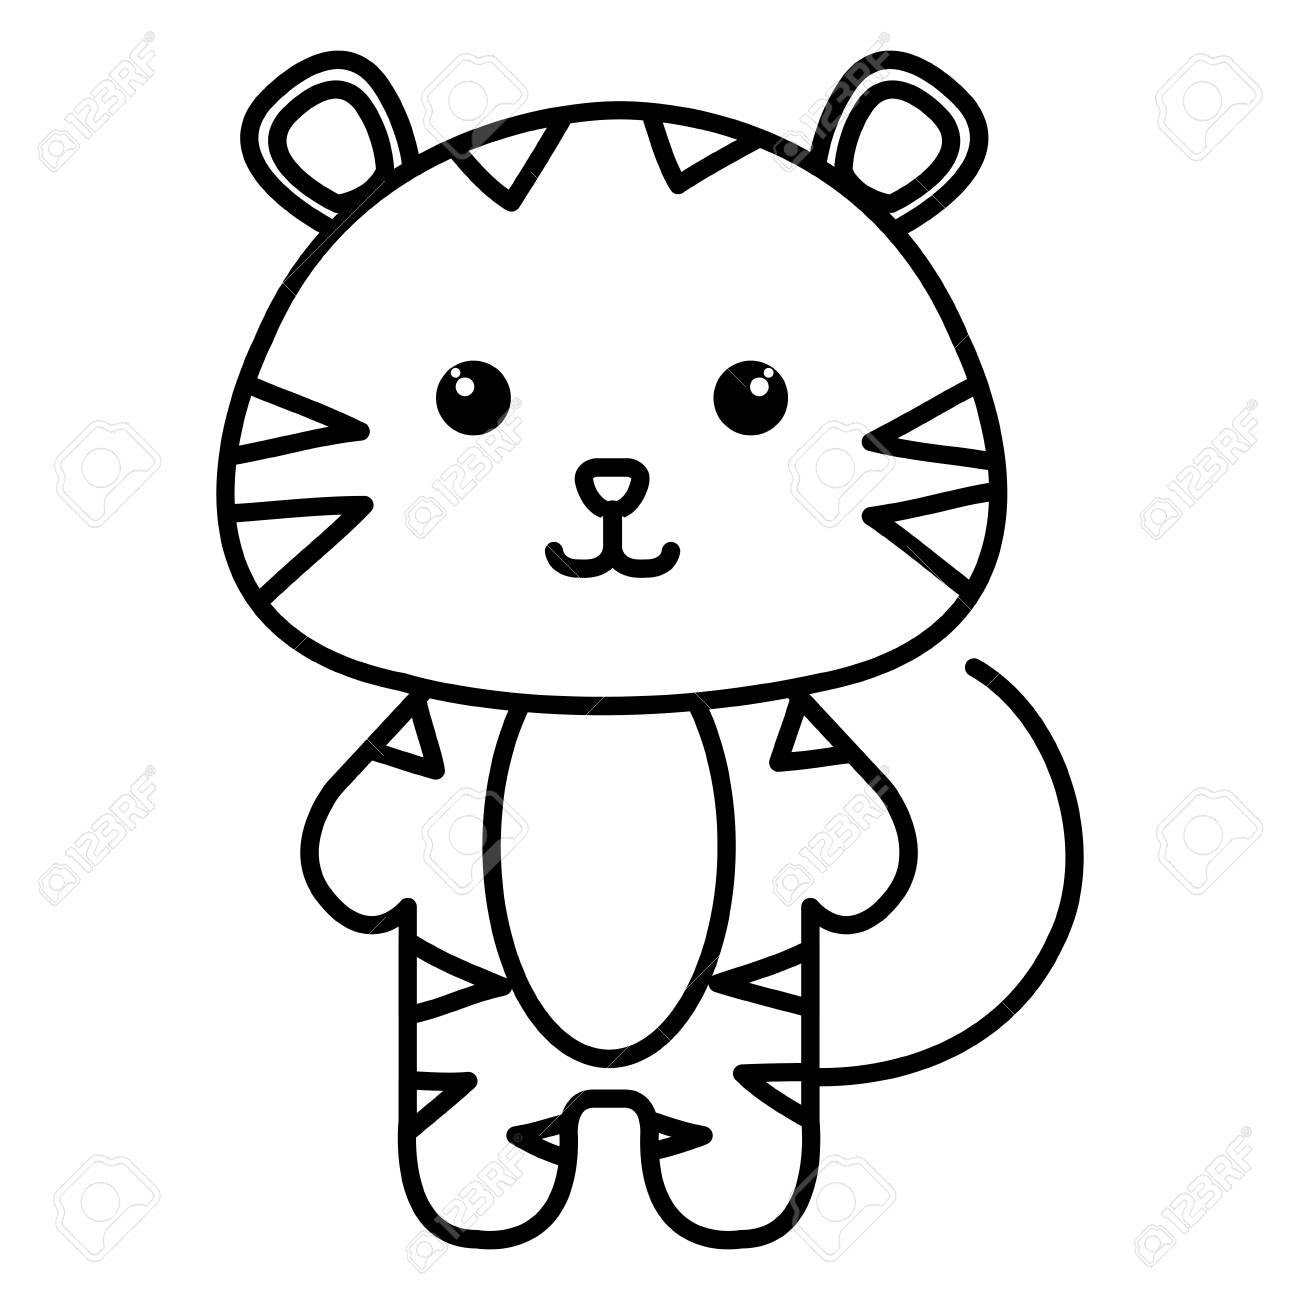 Stuffed Animal Tiger Icon Vector Illustration Design Image Royalty Free Cliparts Vectors And Stock Illustration Image 80859590